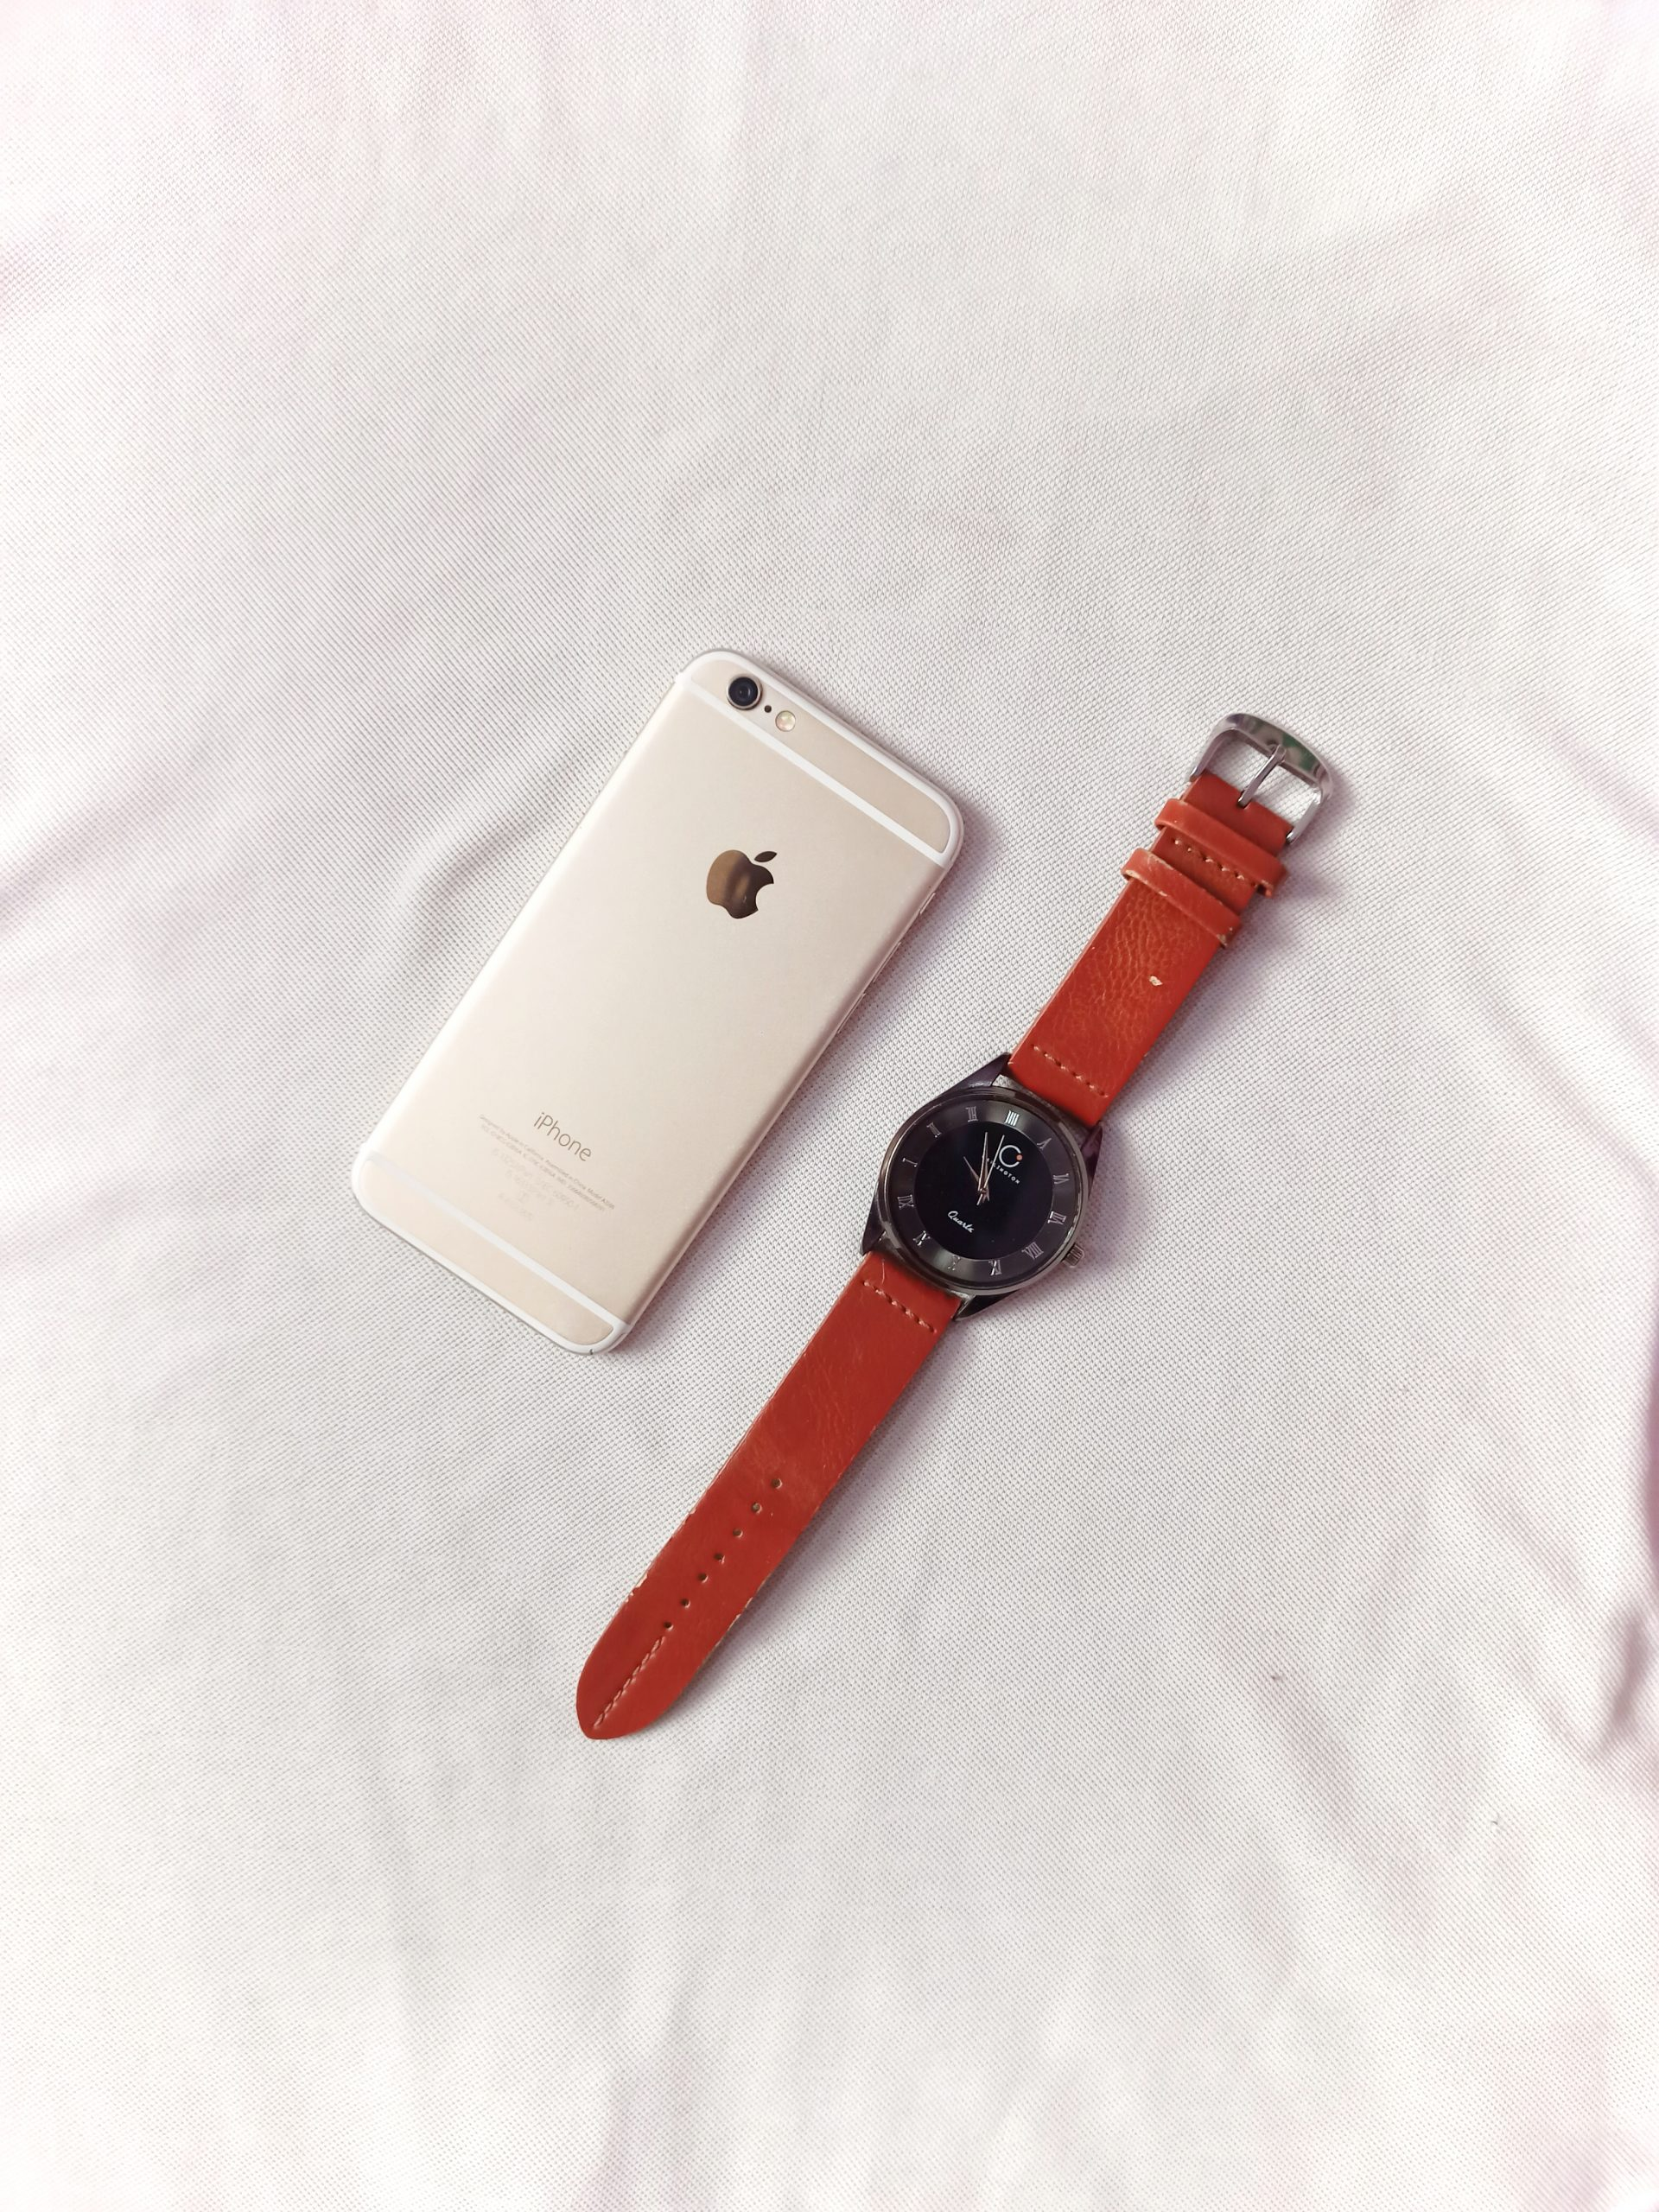 Watch and phone